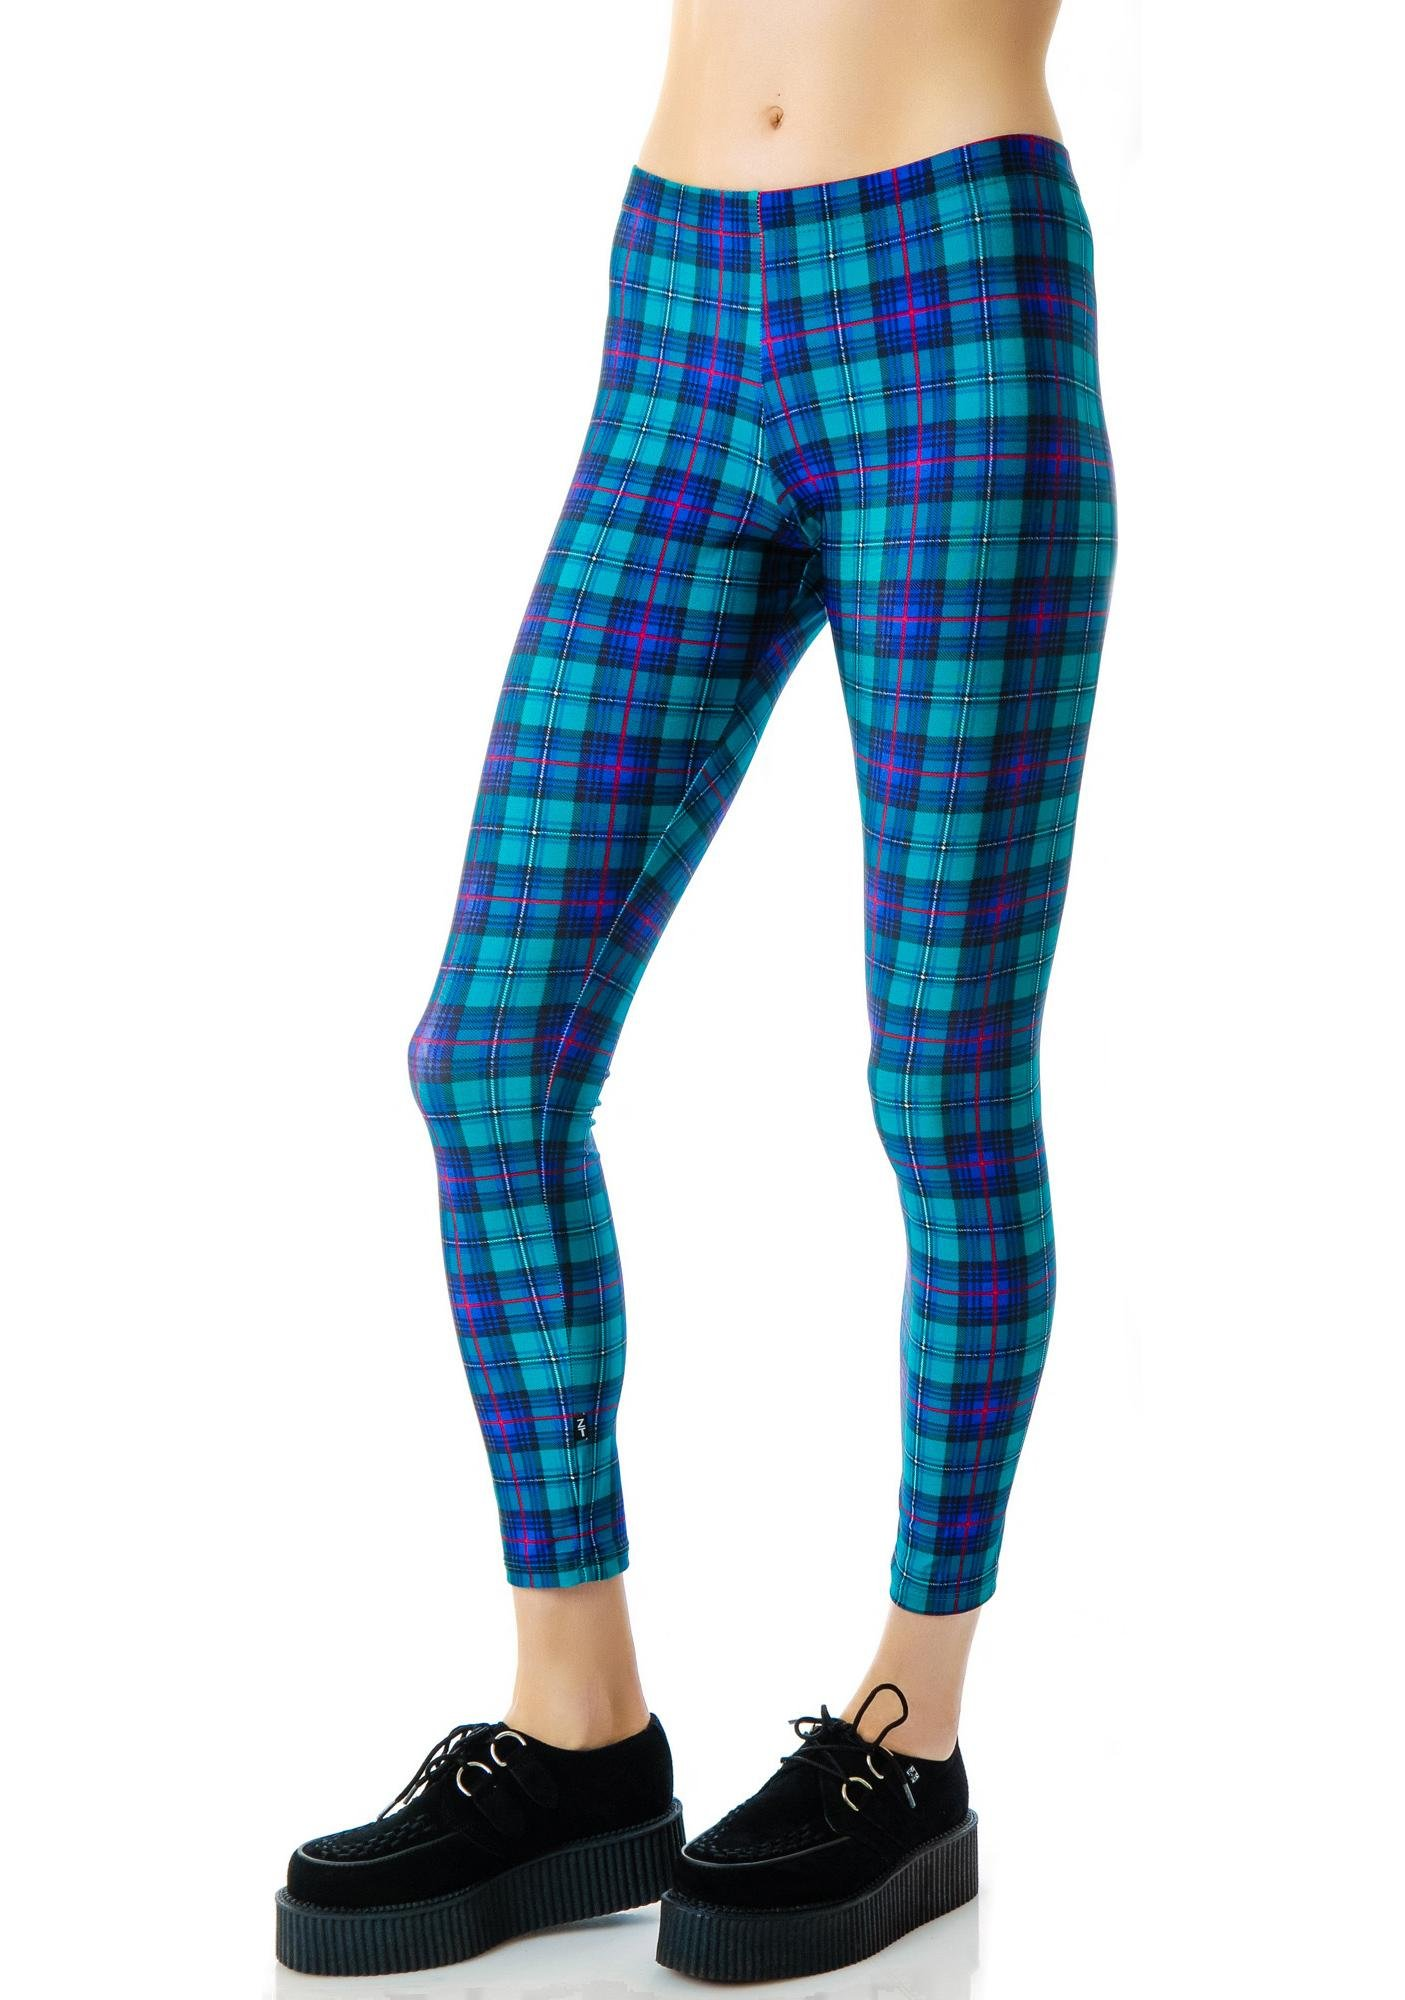 Zara Terez Teal Plaid Leggings